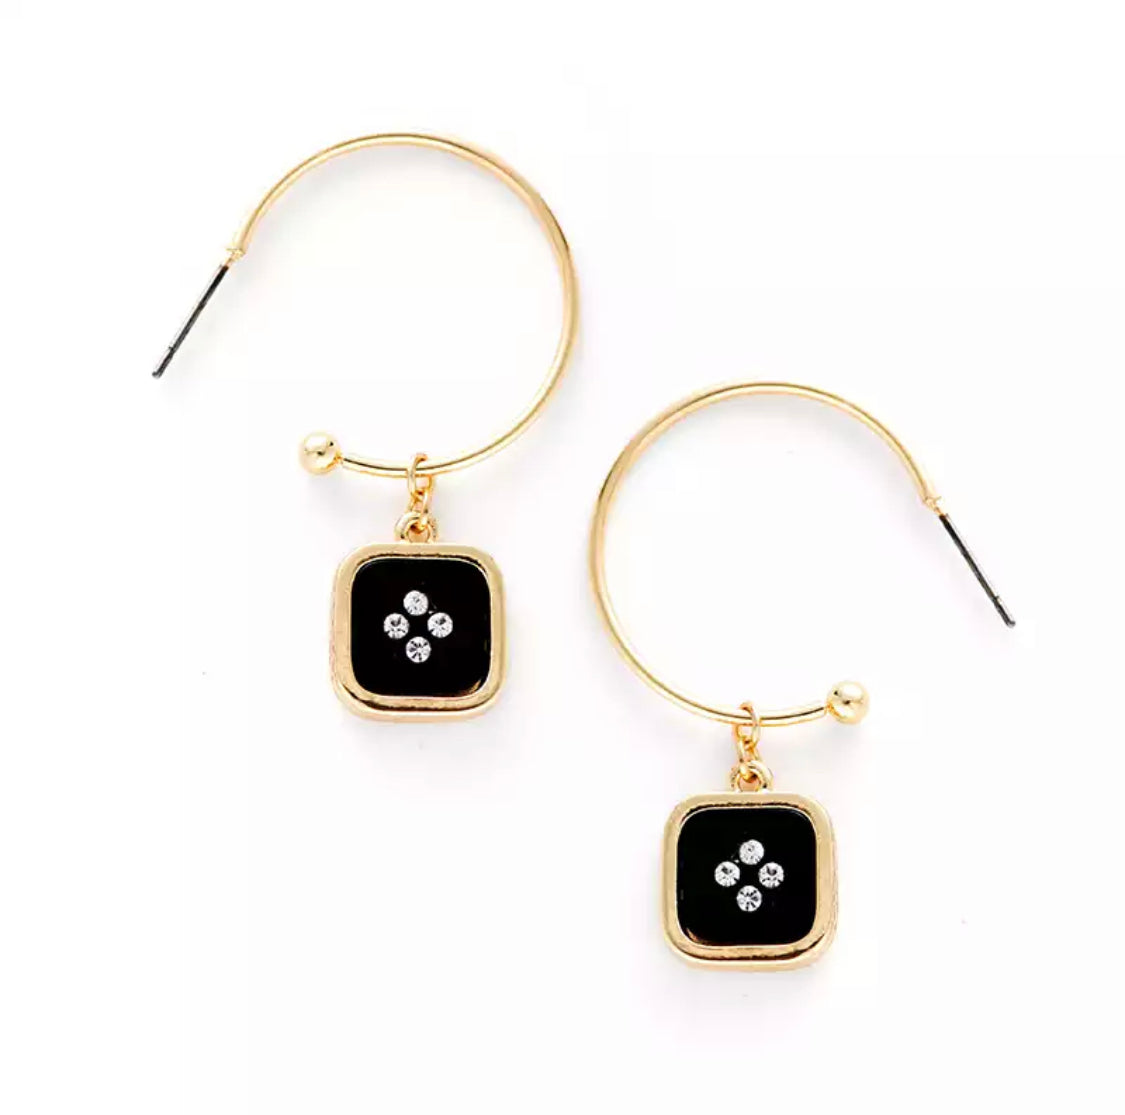 Graciella Black Earrings